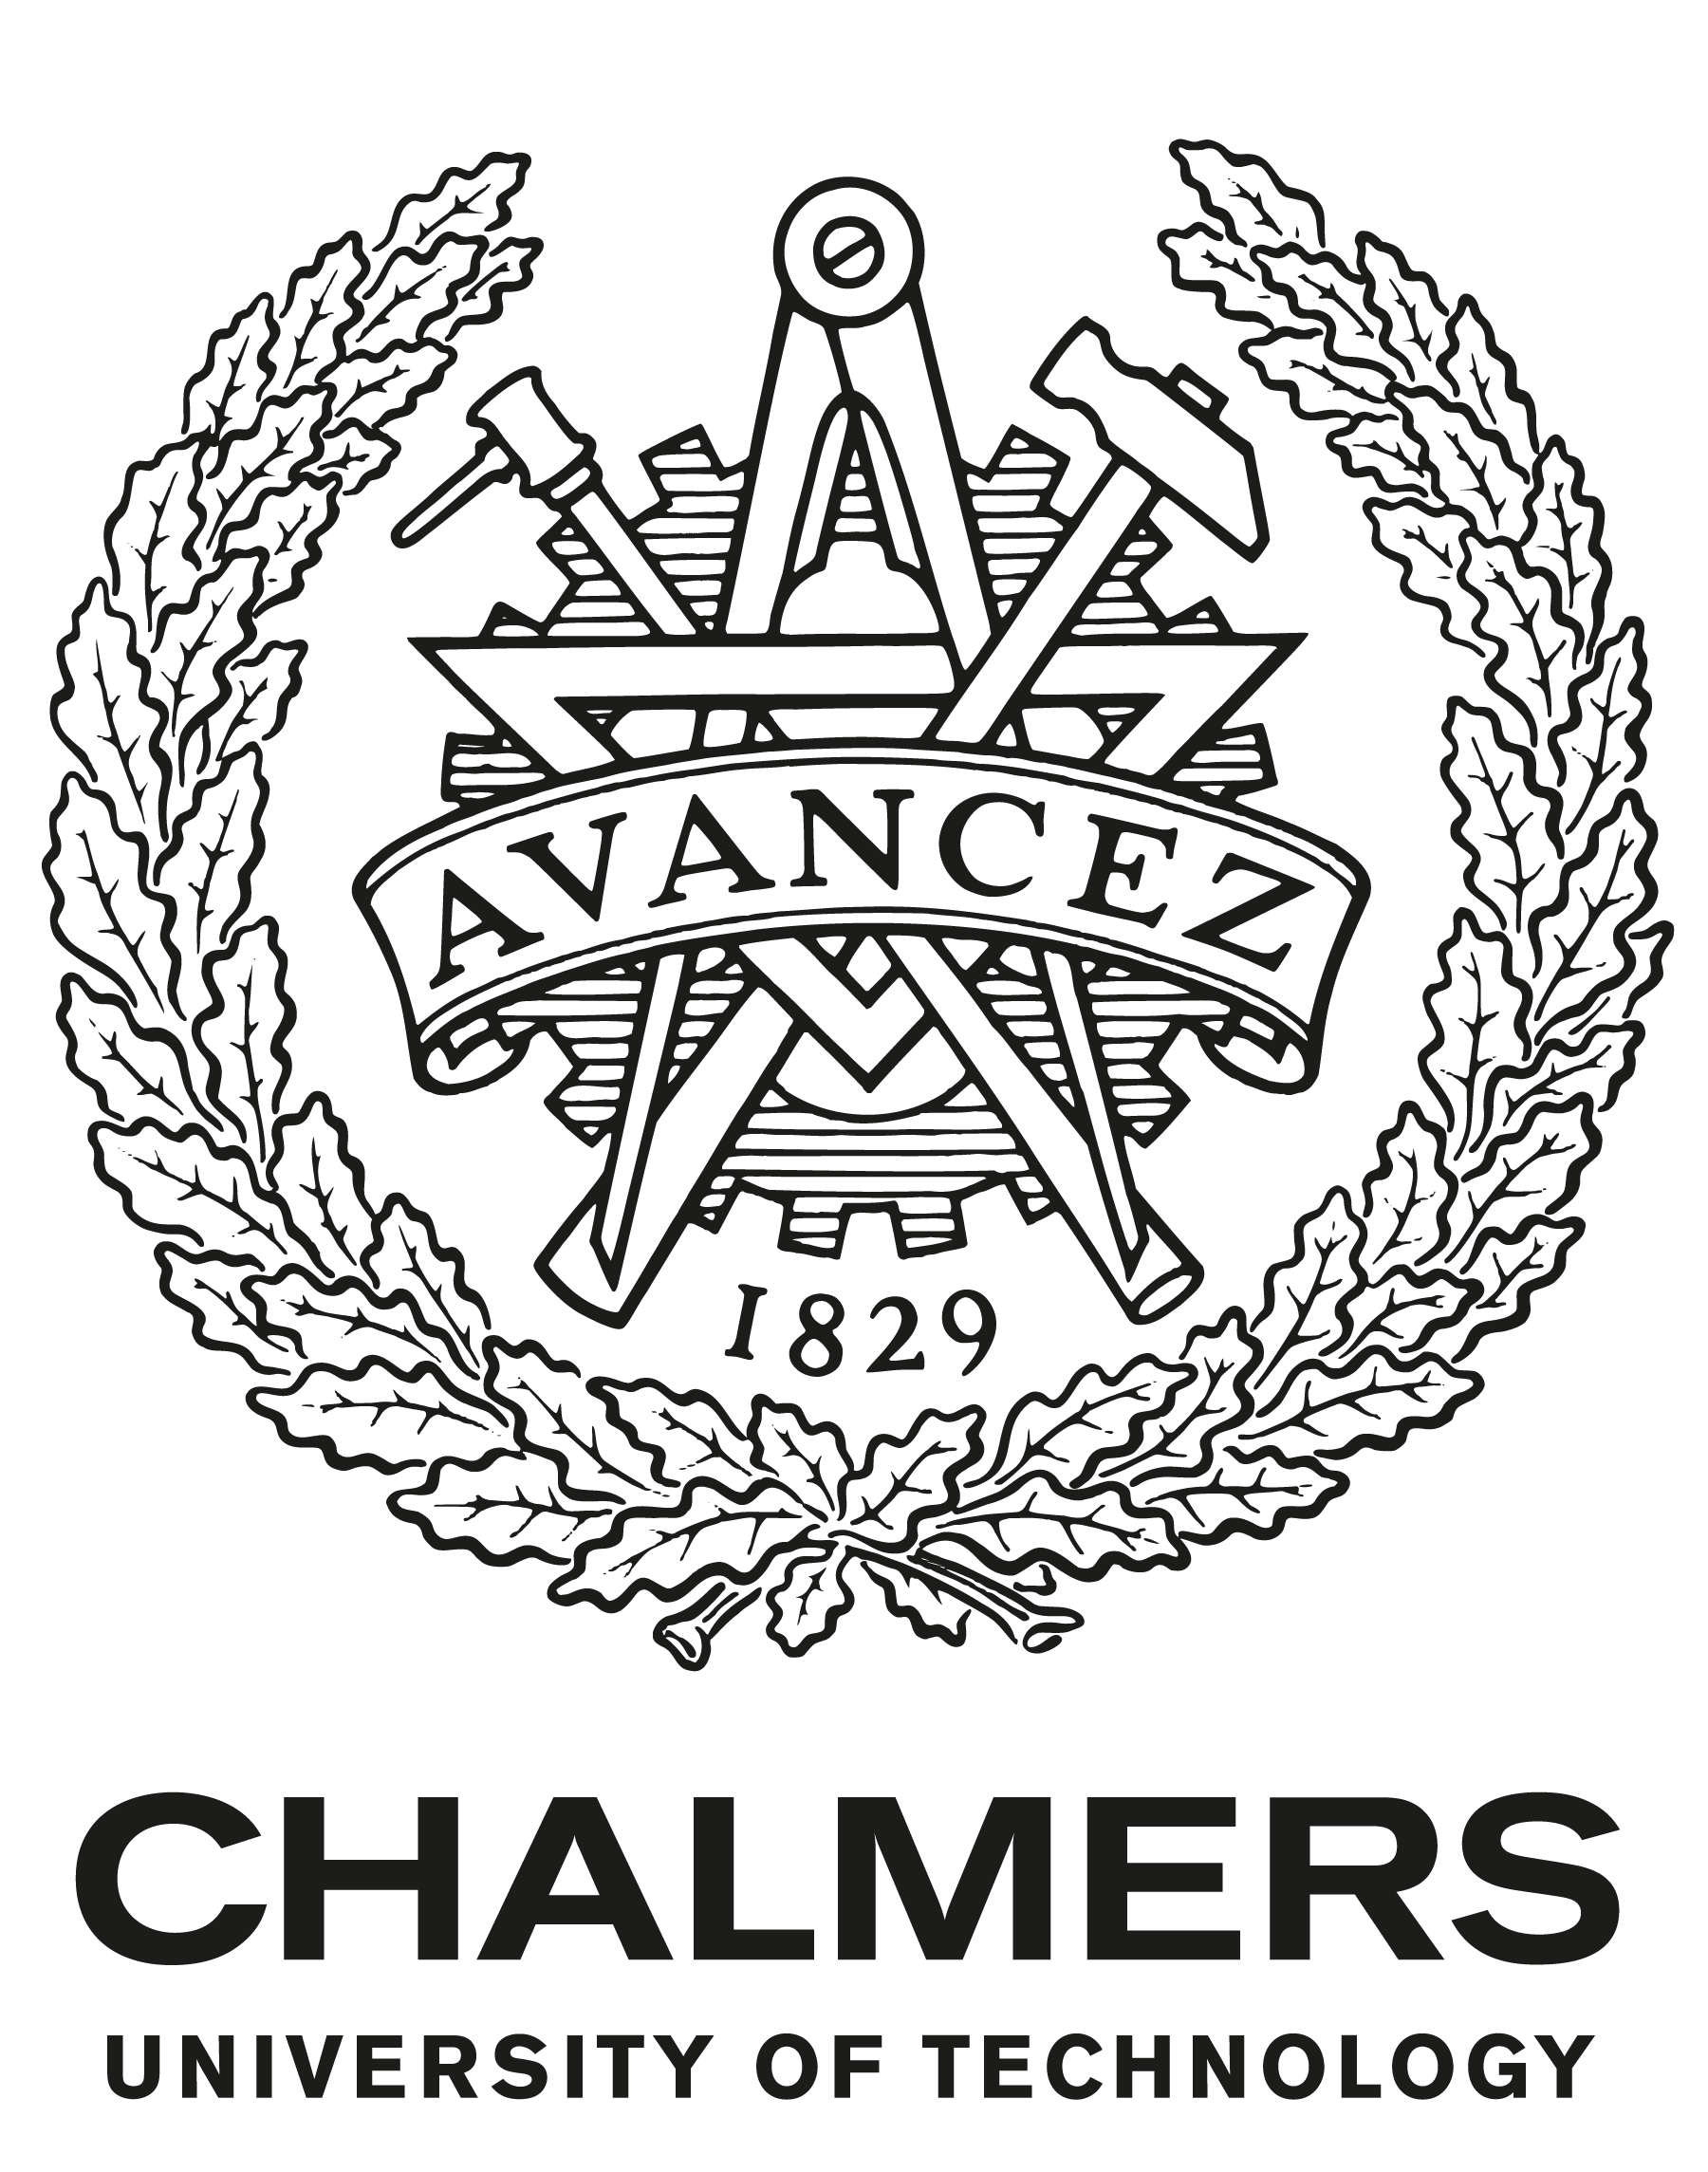 logo Chalmers University of Technology